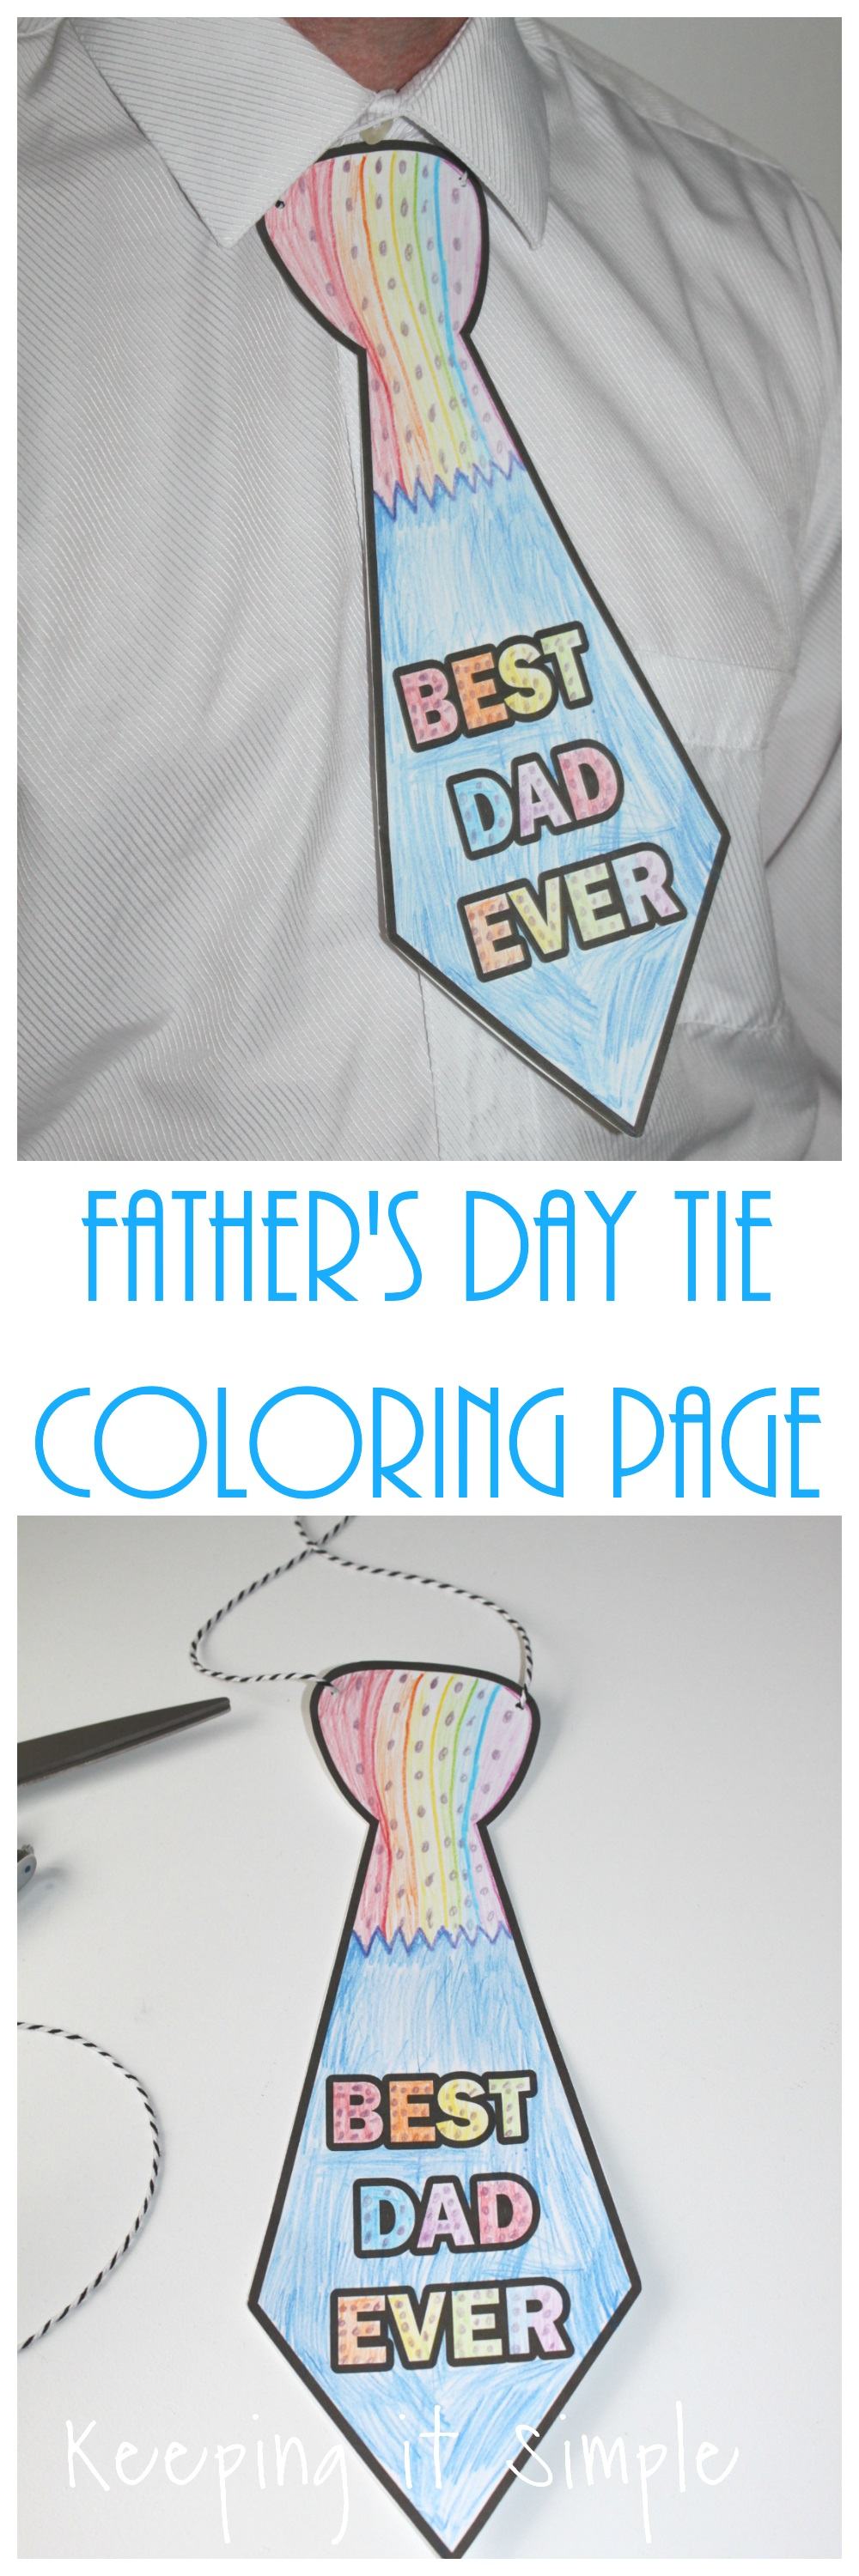 Father S Day Tie Coloring Page Printable Keeping It Simple